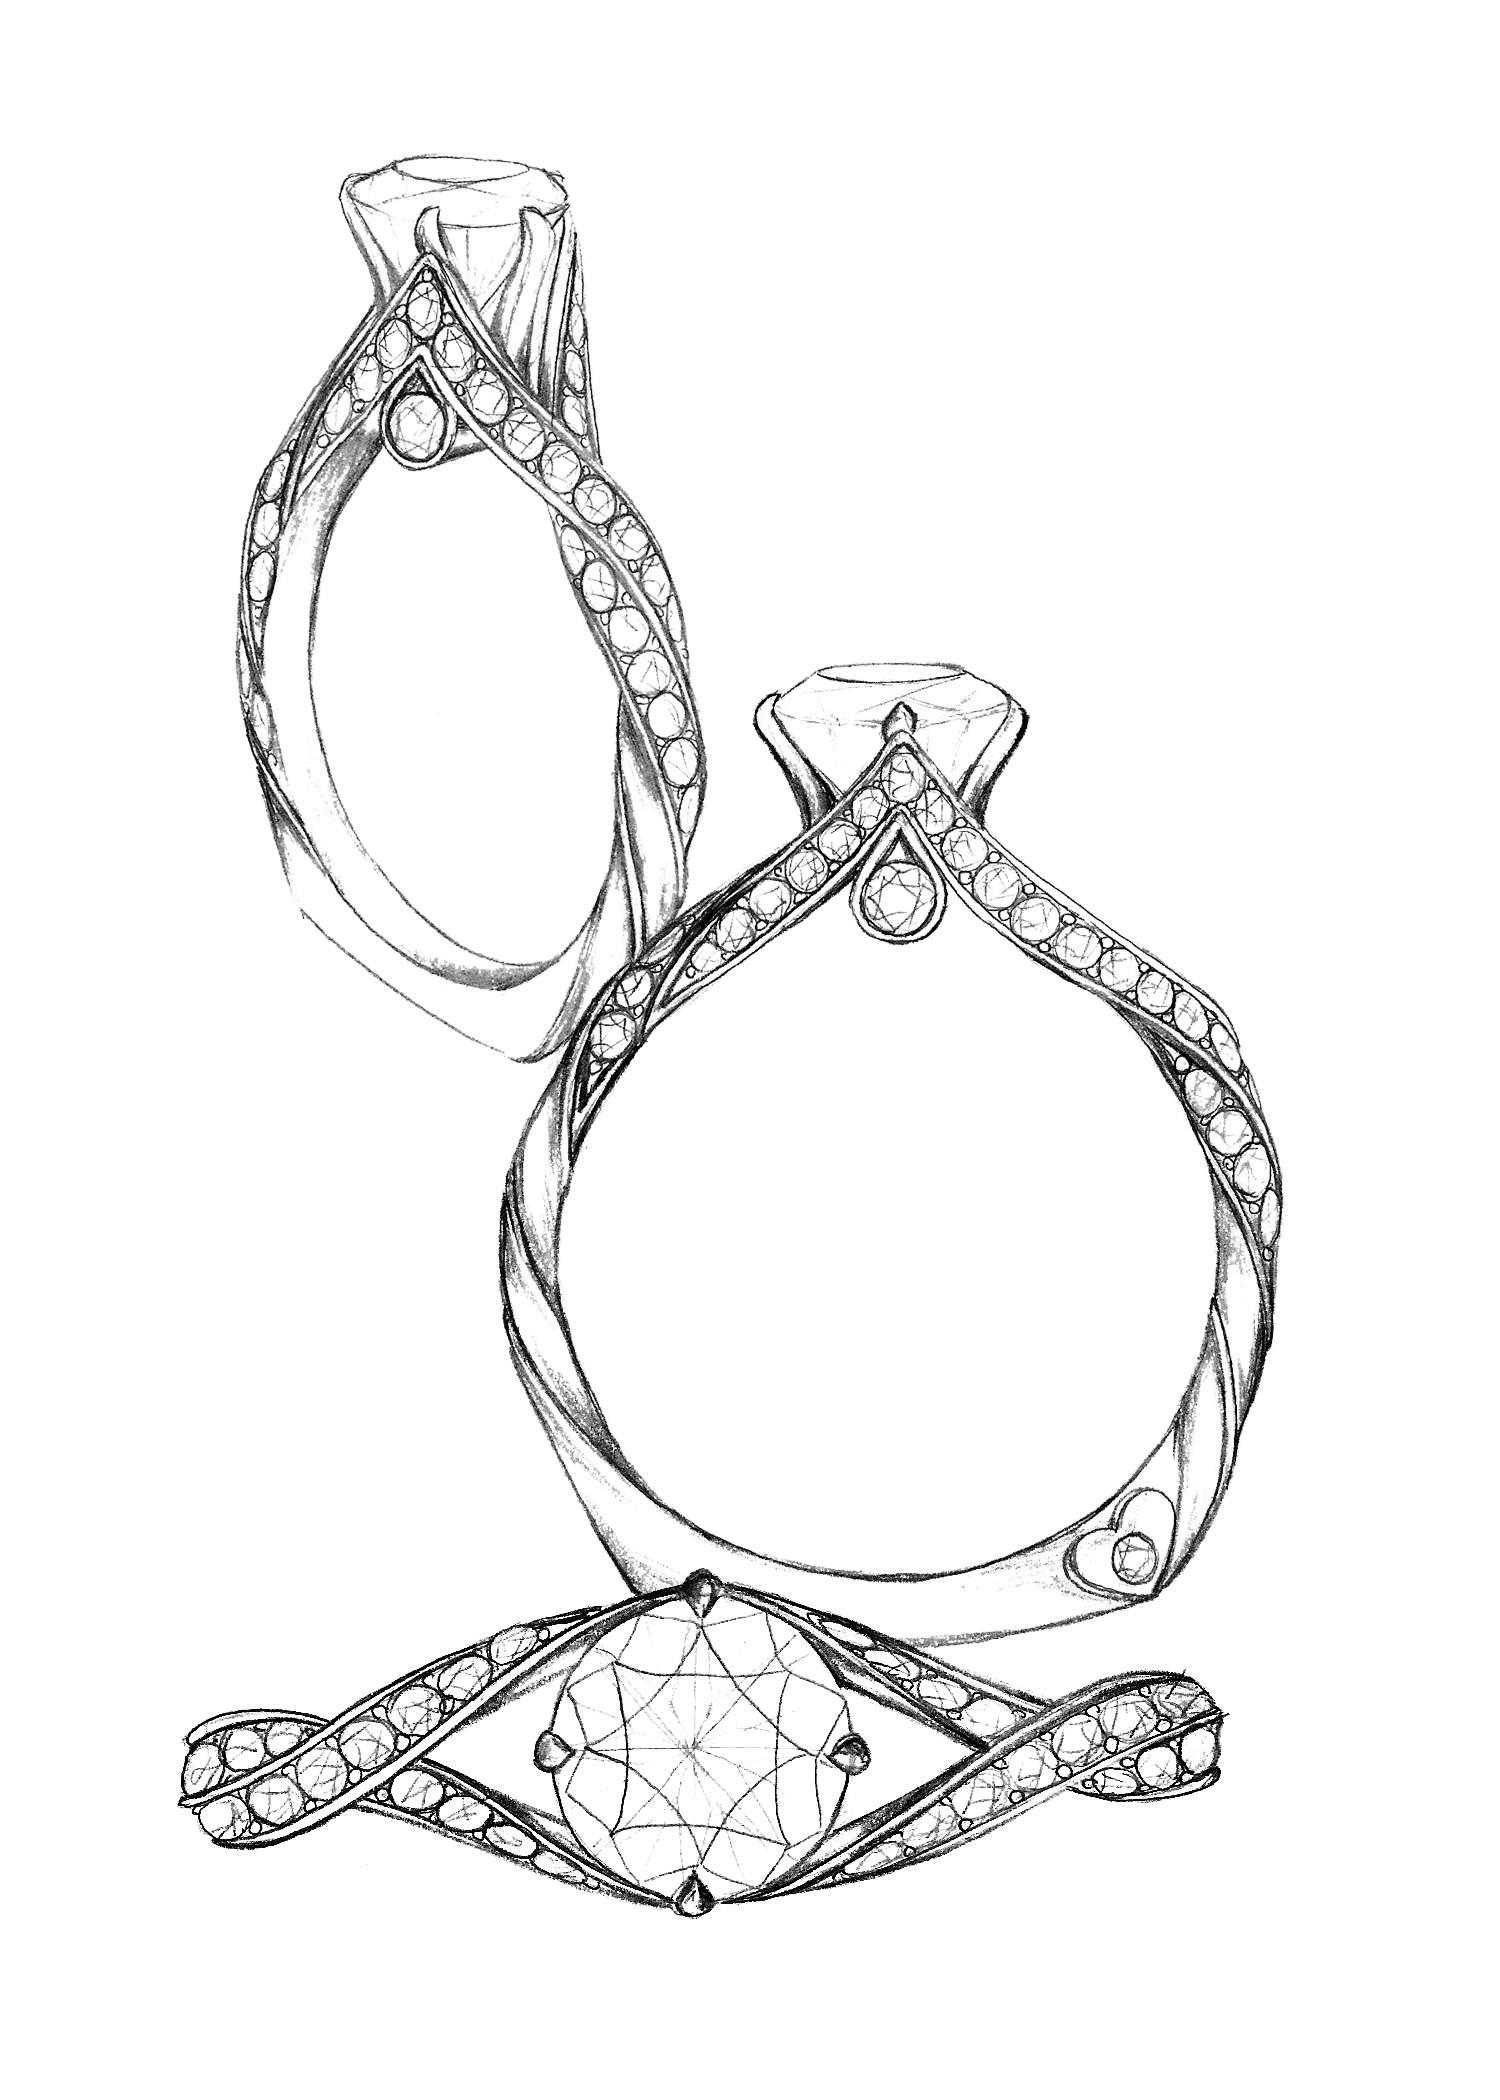 1500x2100 What Do You Think Of This Unique New Design Sketches